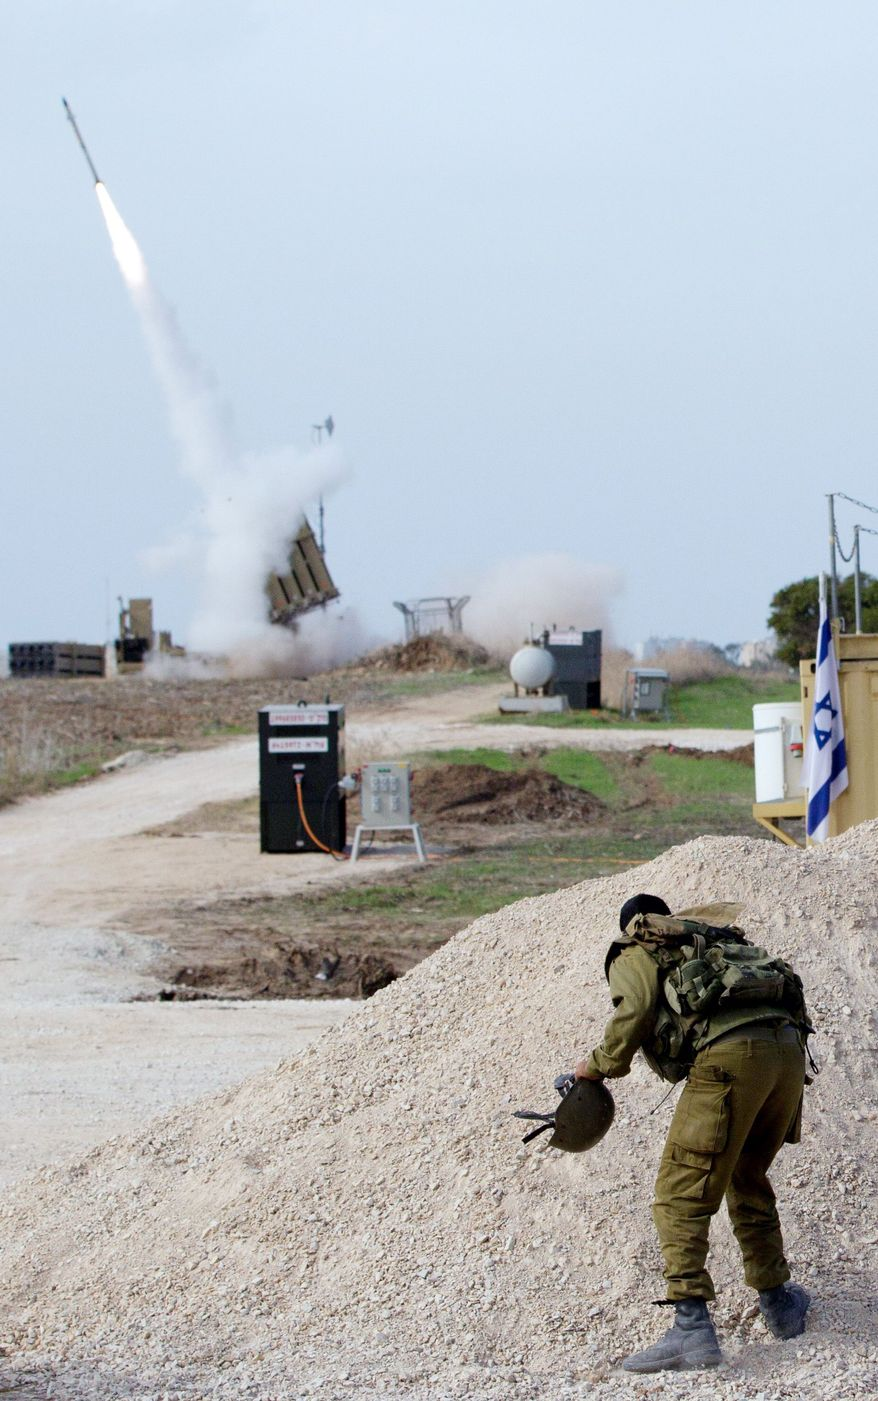 ** FILE ** In this 2012 file photo, an Israeli soldier reacts as an intercepting missile is launched near the city of Ashdod, Israel. (Associated Press)